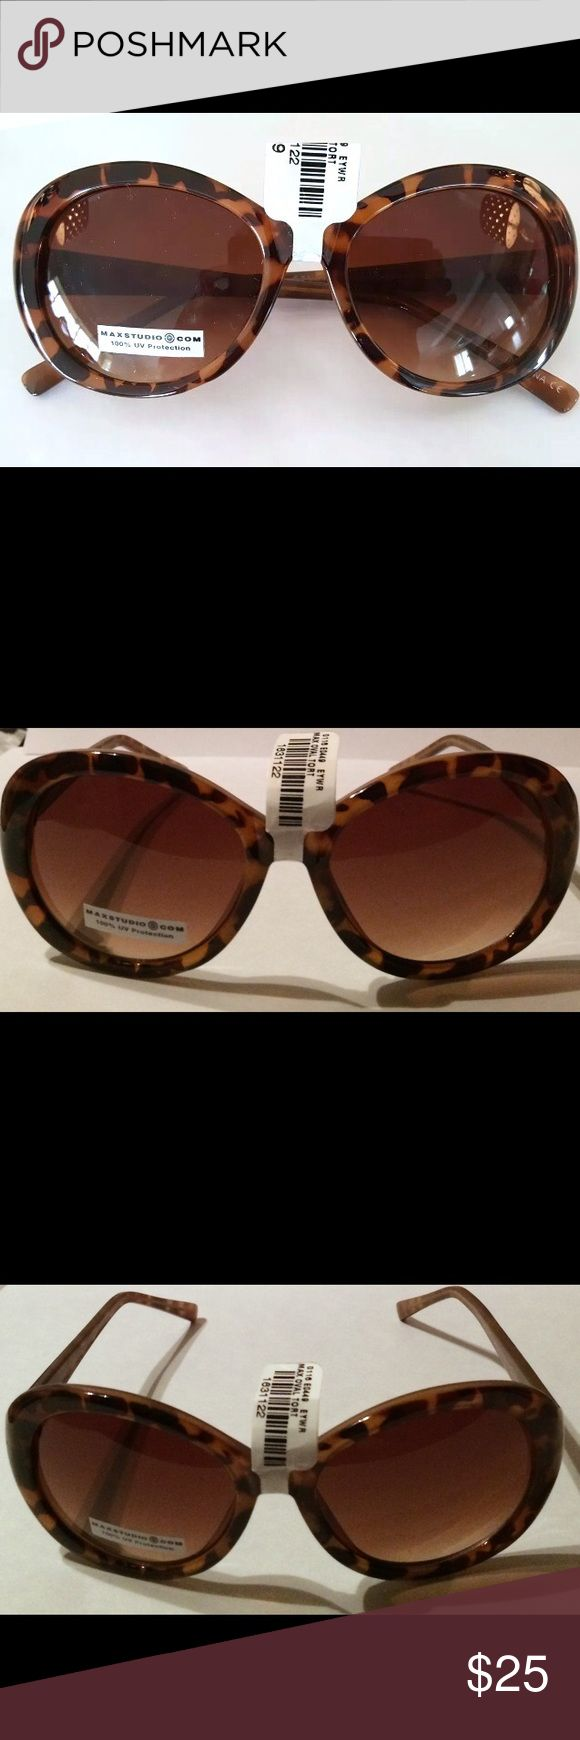 StudioM Max Studio Oval M852 Tortoise Sunglasses Protect your eyes with Designer Studio M by Max Studio Sunglasses, Retails $45, no case • Studio M by Max Studio Sunglasses • M852 • Frames: Plastic • Frame Color: Tortoise • Lens: Brown Gradient • 100% UV Protection • New With Tags • Frames: Plastic • Frame Color: Tortoise • Lens: Brown Gradient • 100% UV Protection • New With Tags Max Studio Accessories Sunglasses